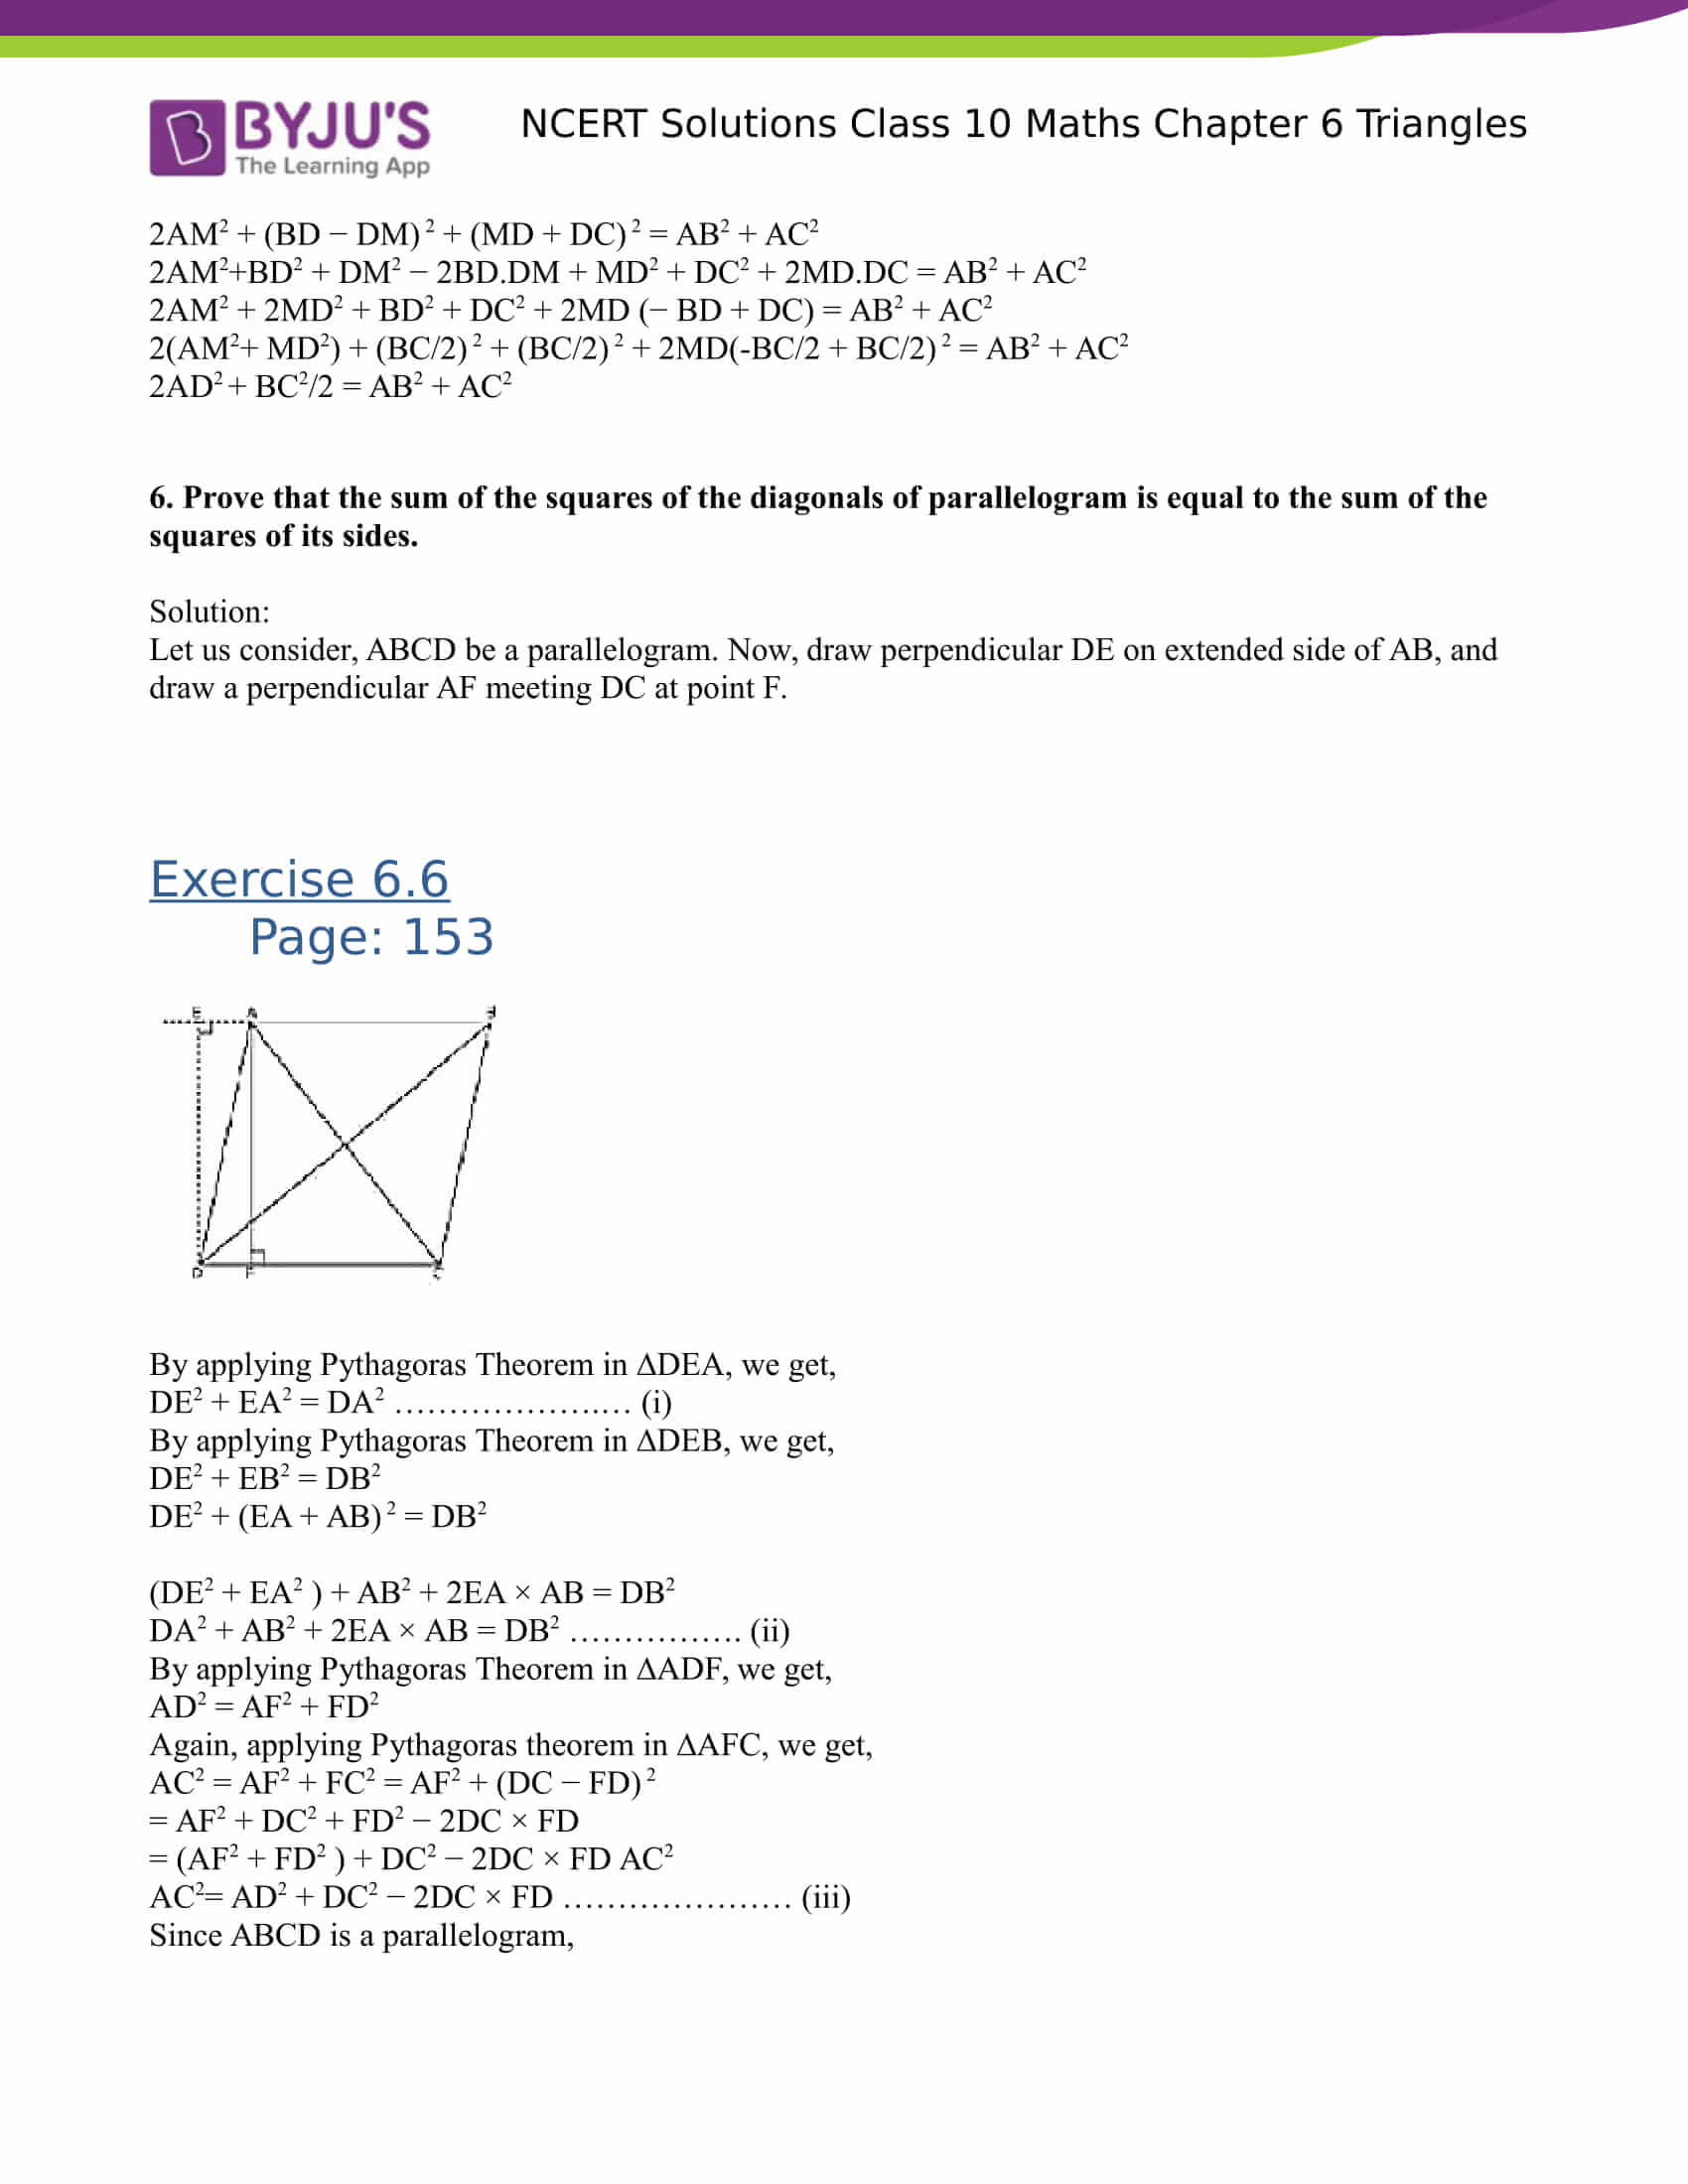 NCERT Solutions for class 10 Maths Chapter 6 Triangles Part 51